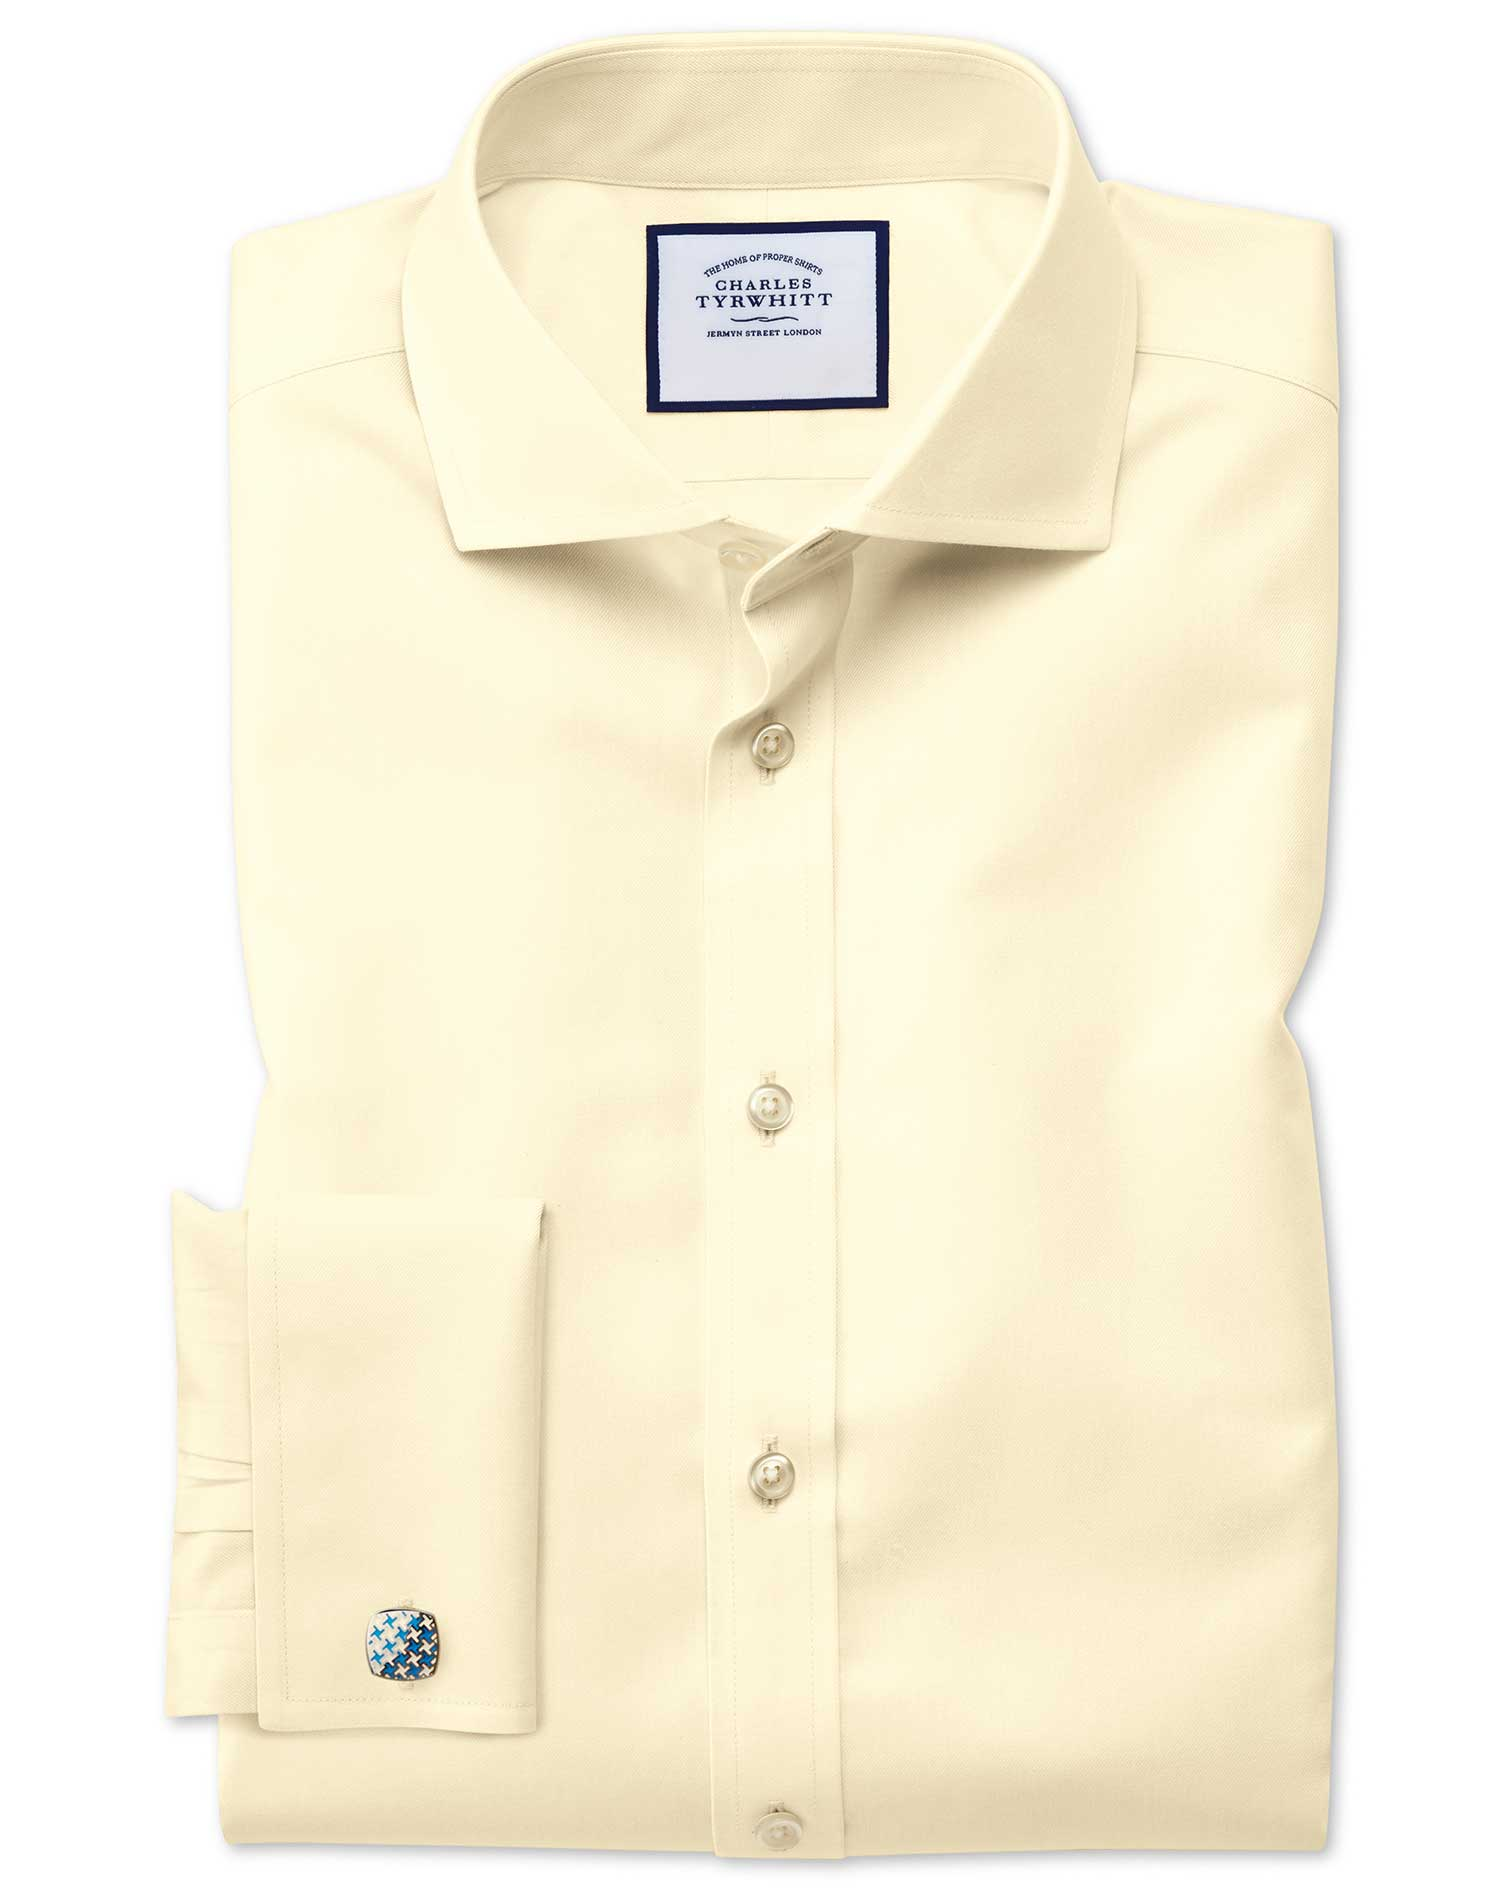 Slim Fit Cutaway Collar Non-Iron Twill Yellow Cotton Formal Shirt Single Cuff Size 17/37 by Charles